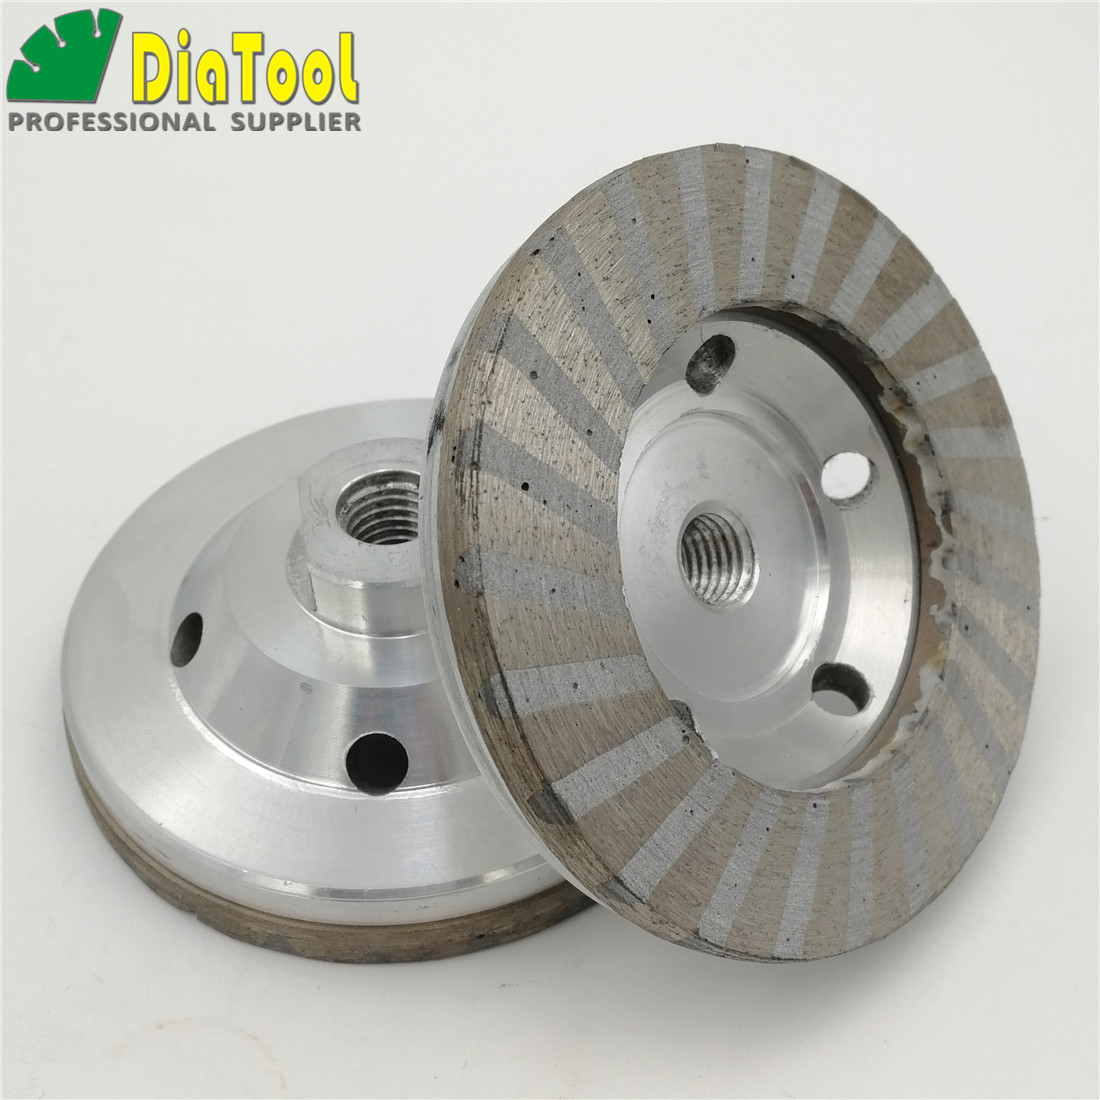 DIATOOL 2pcs 4in M14 Thread Aluminum Based Grinding Cup Wheel #50 #100 Diameter 100mm Diamond Fine Grinding With Great Finishing eglo подвесная люстра eglo pinto nero 90306